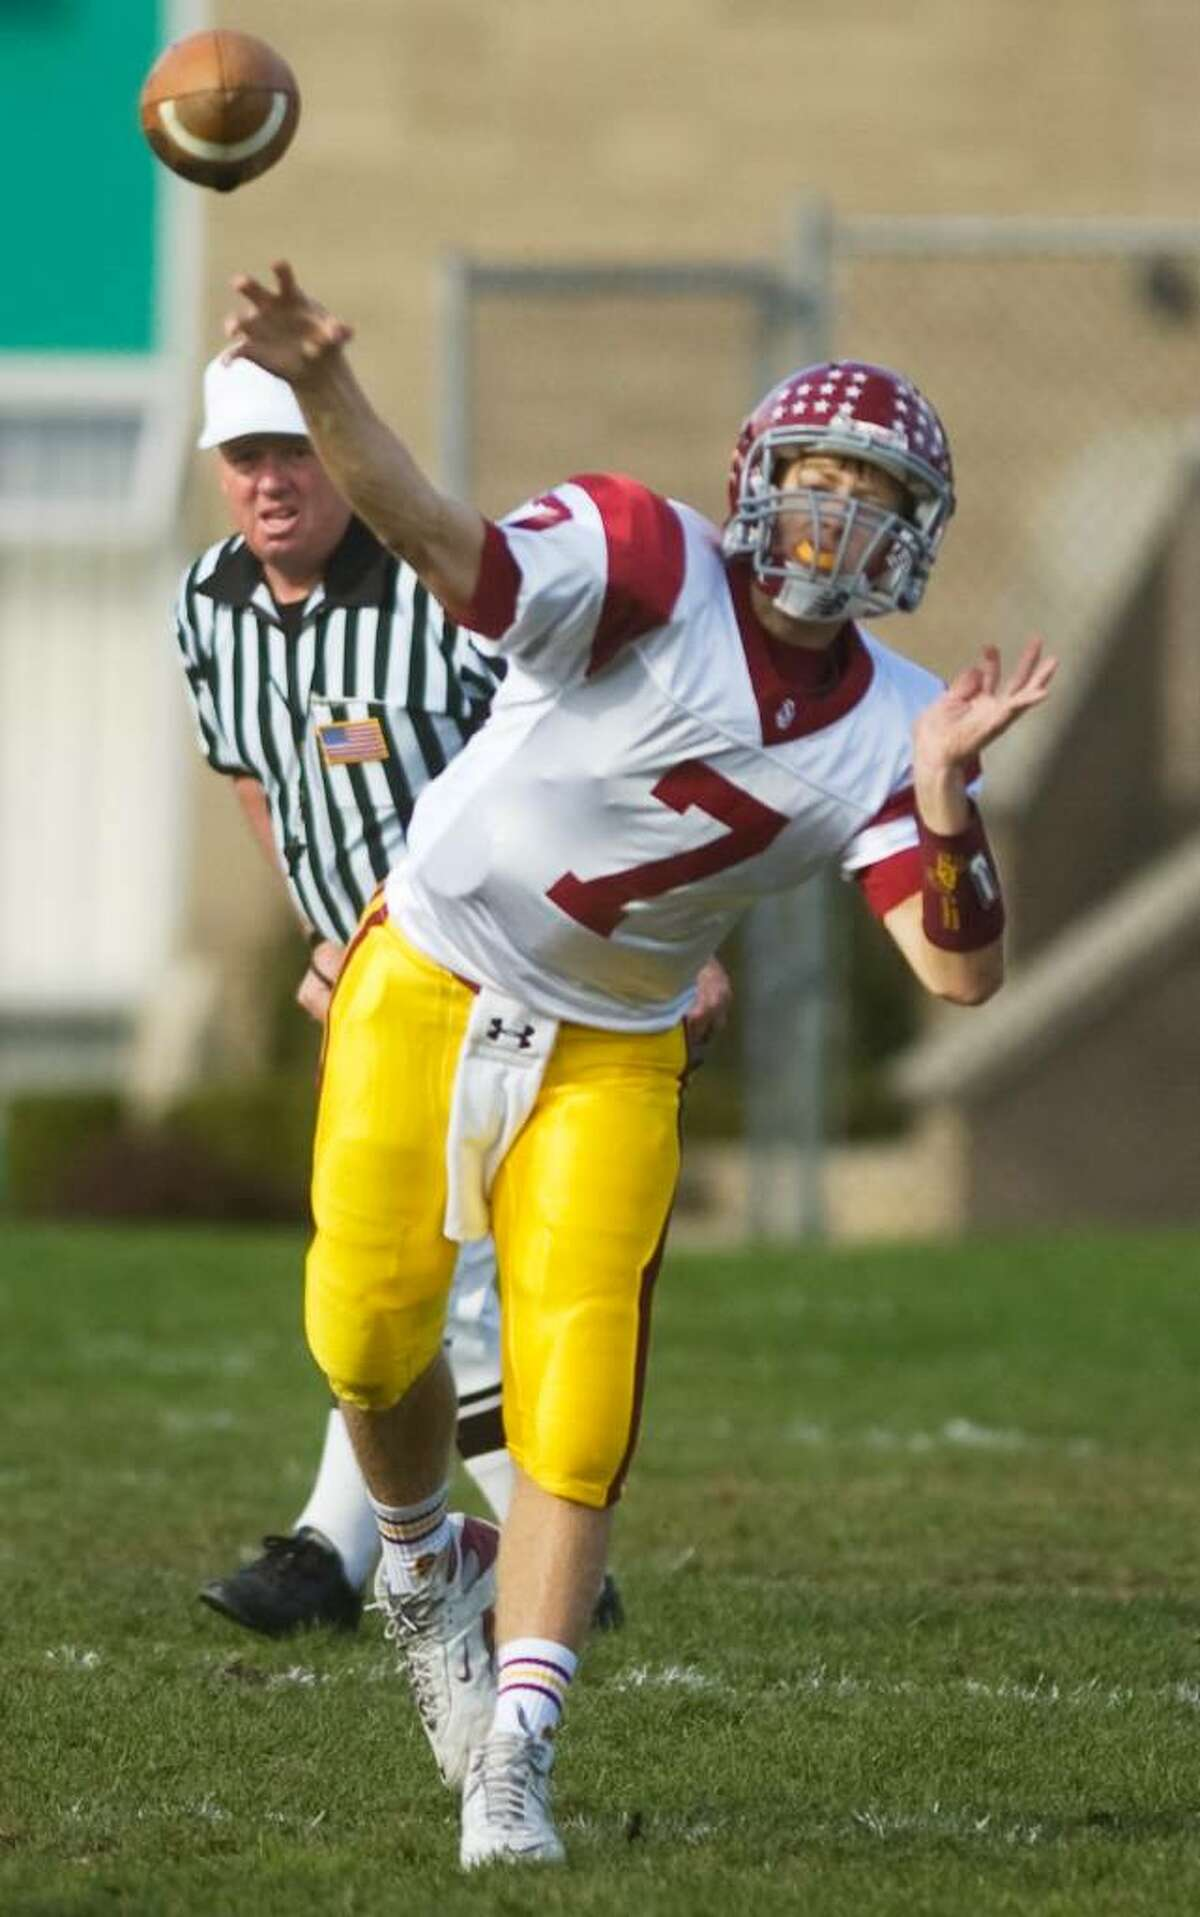 St. Joseph High School's quarterback Joe Della Vecchia throws a pass against Trinity Catholic High School in football action at Trinity.